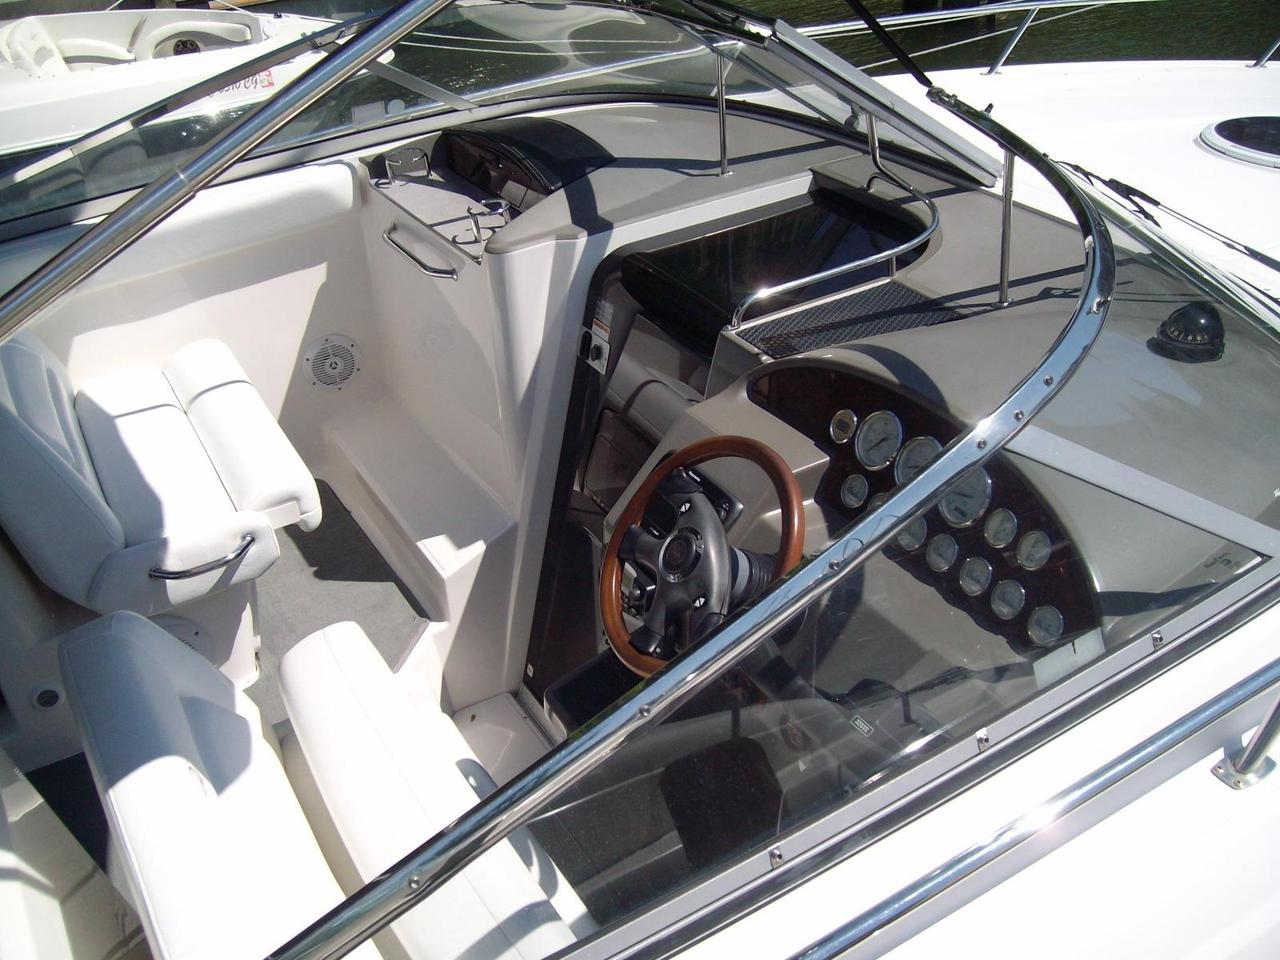 2007 Used Regal 3350 Sport Cruiser Boat For Sale - $89,888 ...